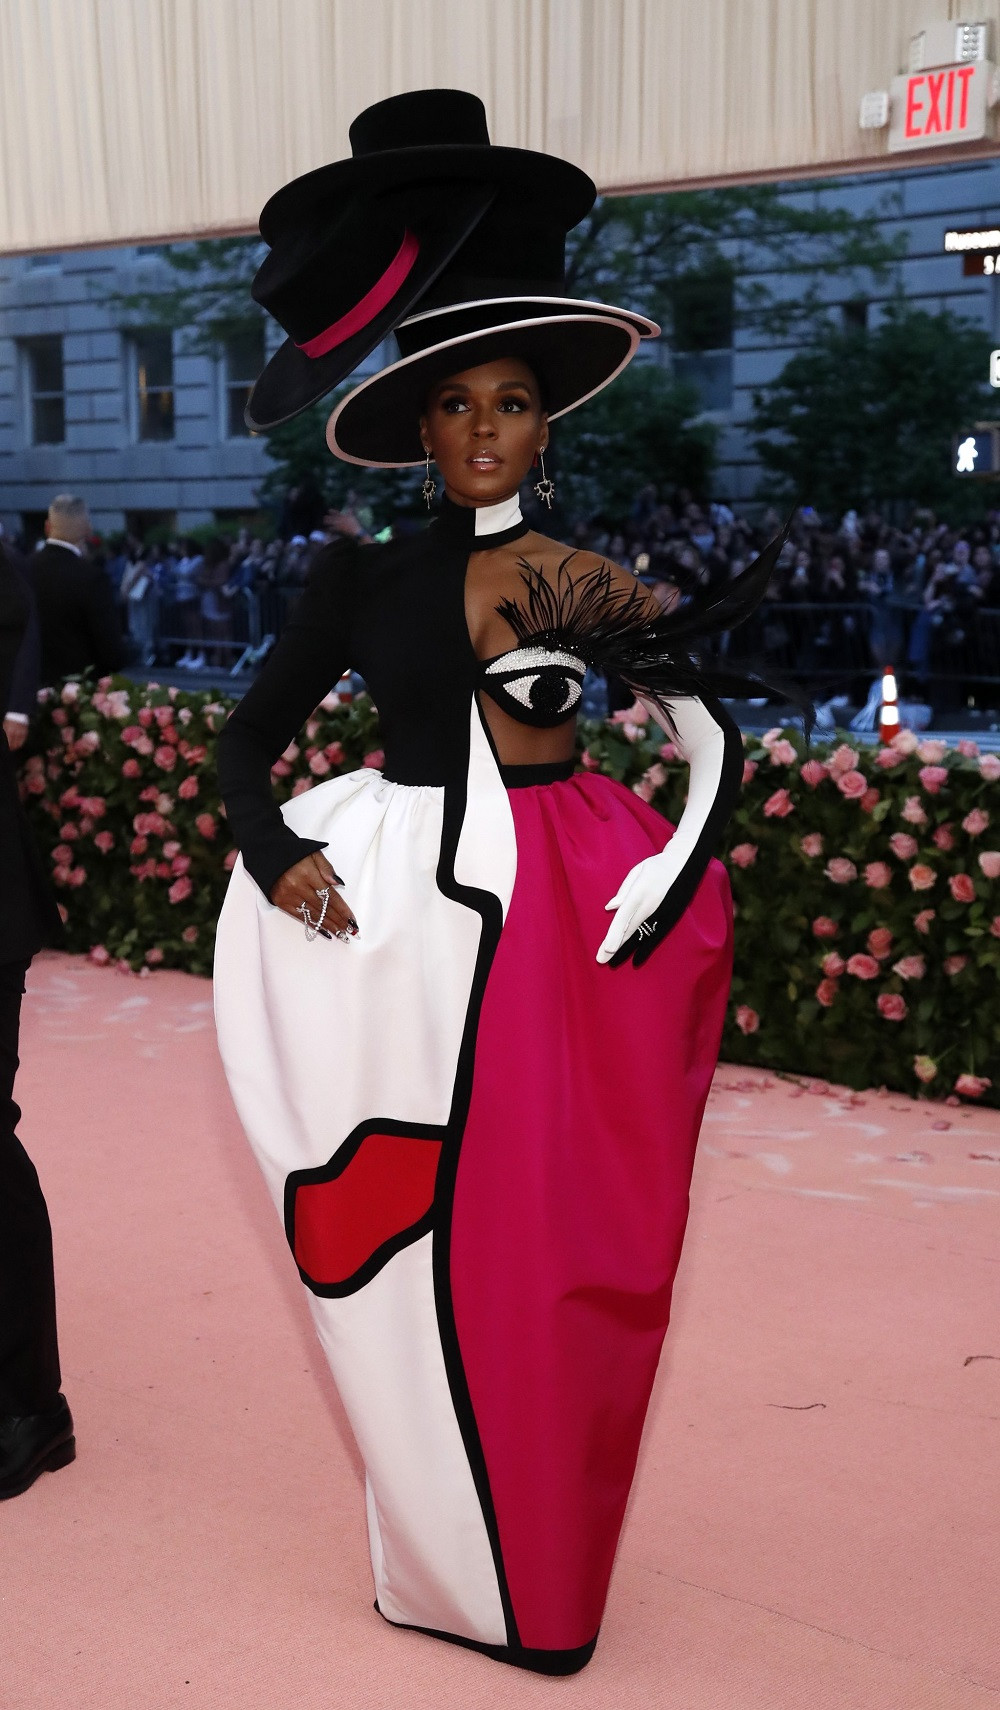 Janelle Monae at the Metropolitan Museum of Art Costume Institute Gala in New York City, US, on May 6, 2019.